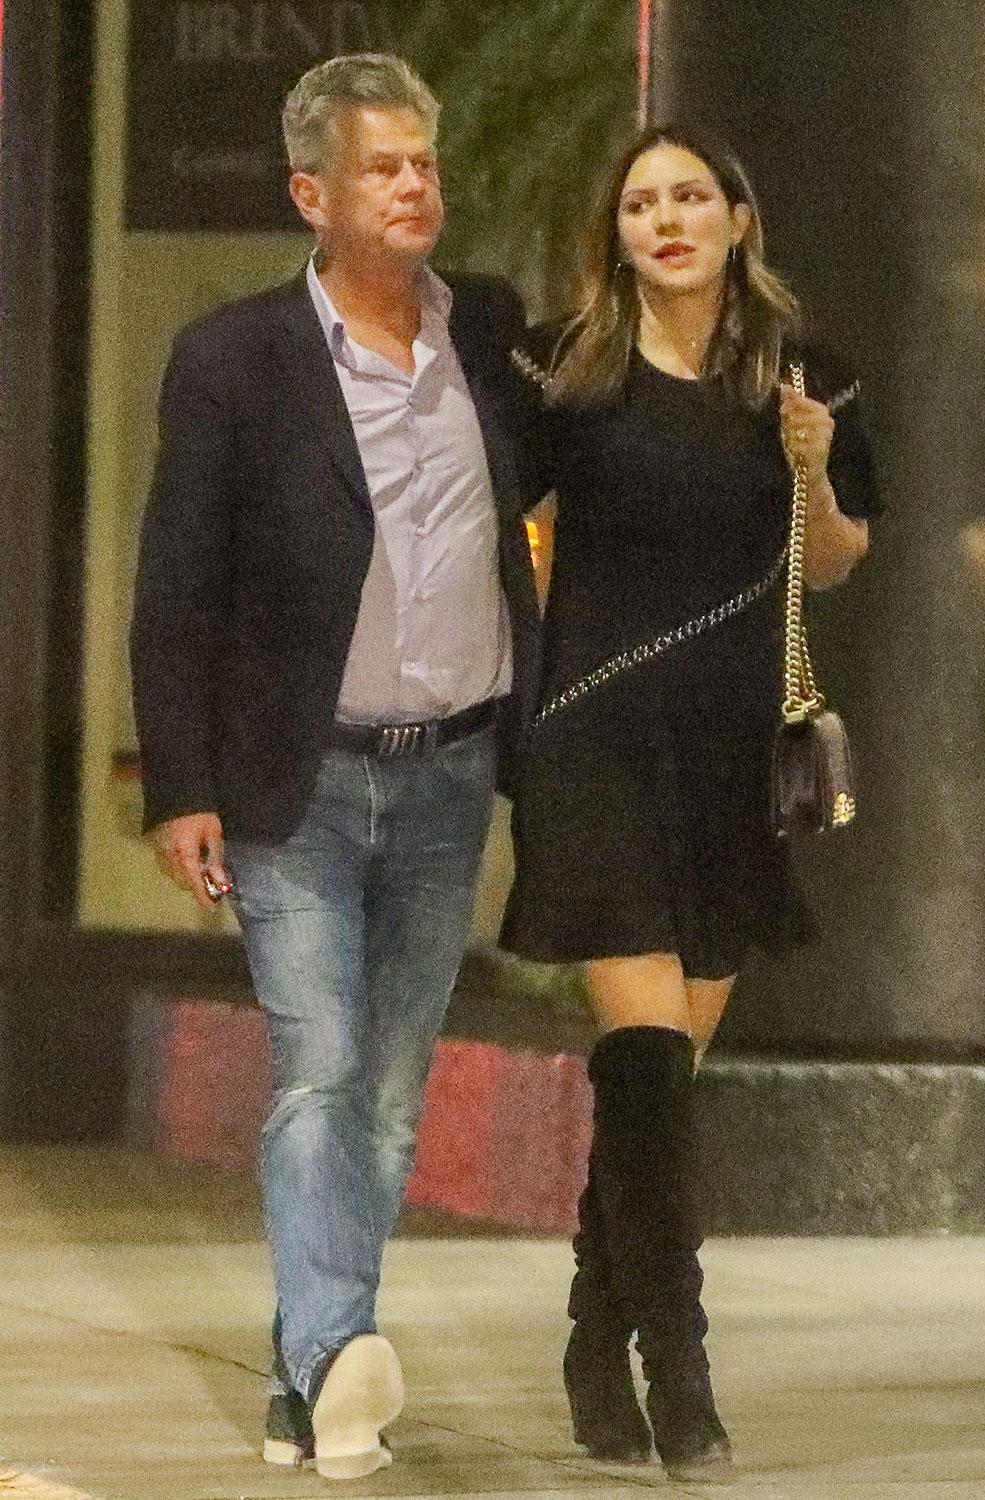 David Foster And Katharine Mcphee Stroll Arm In Arm As Source Says They Re Dear Friends Nothing More